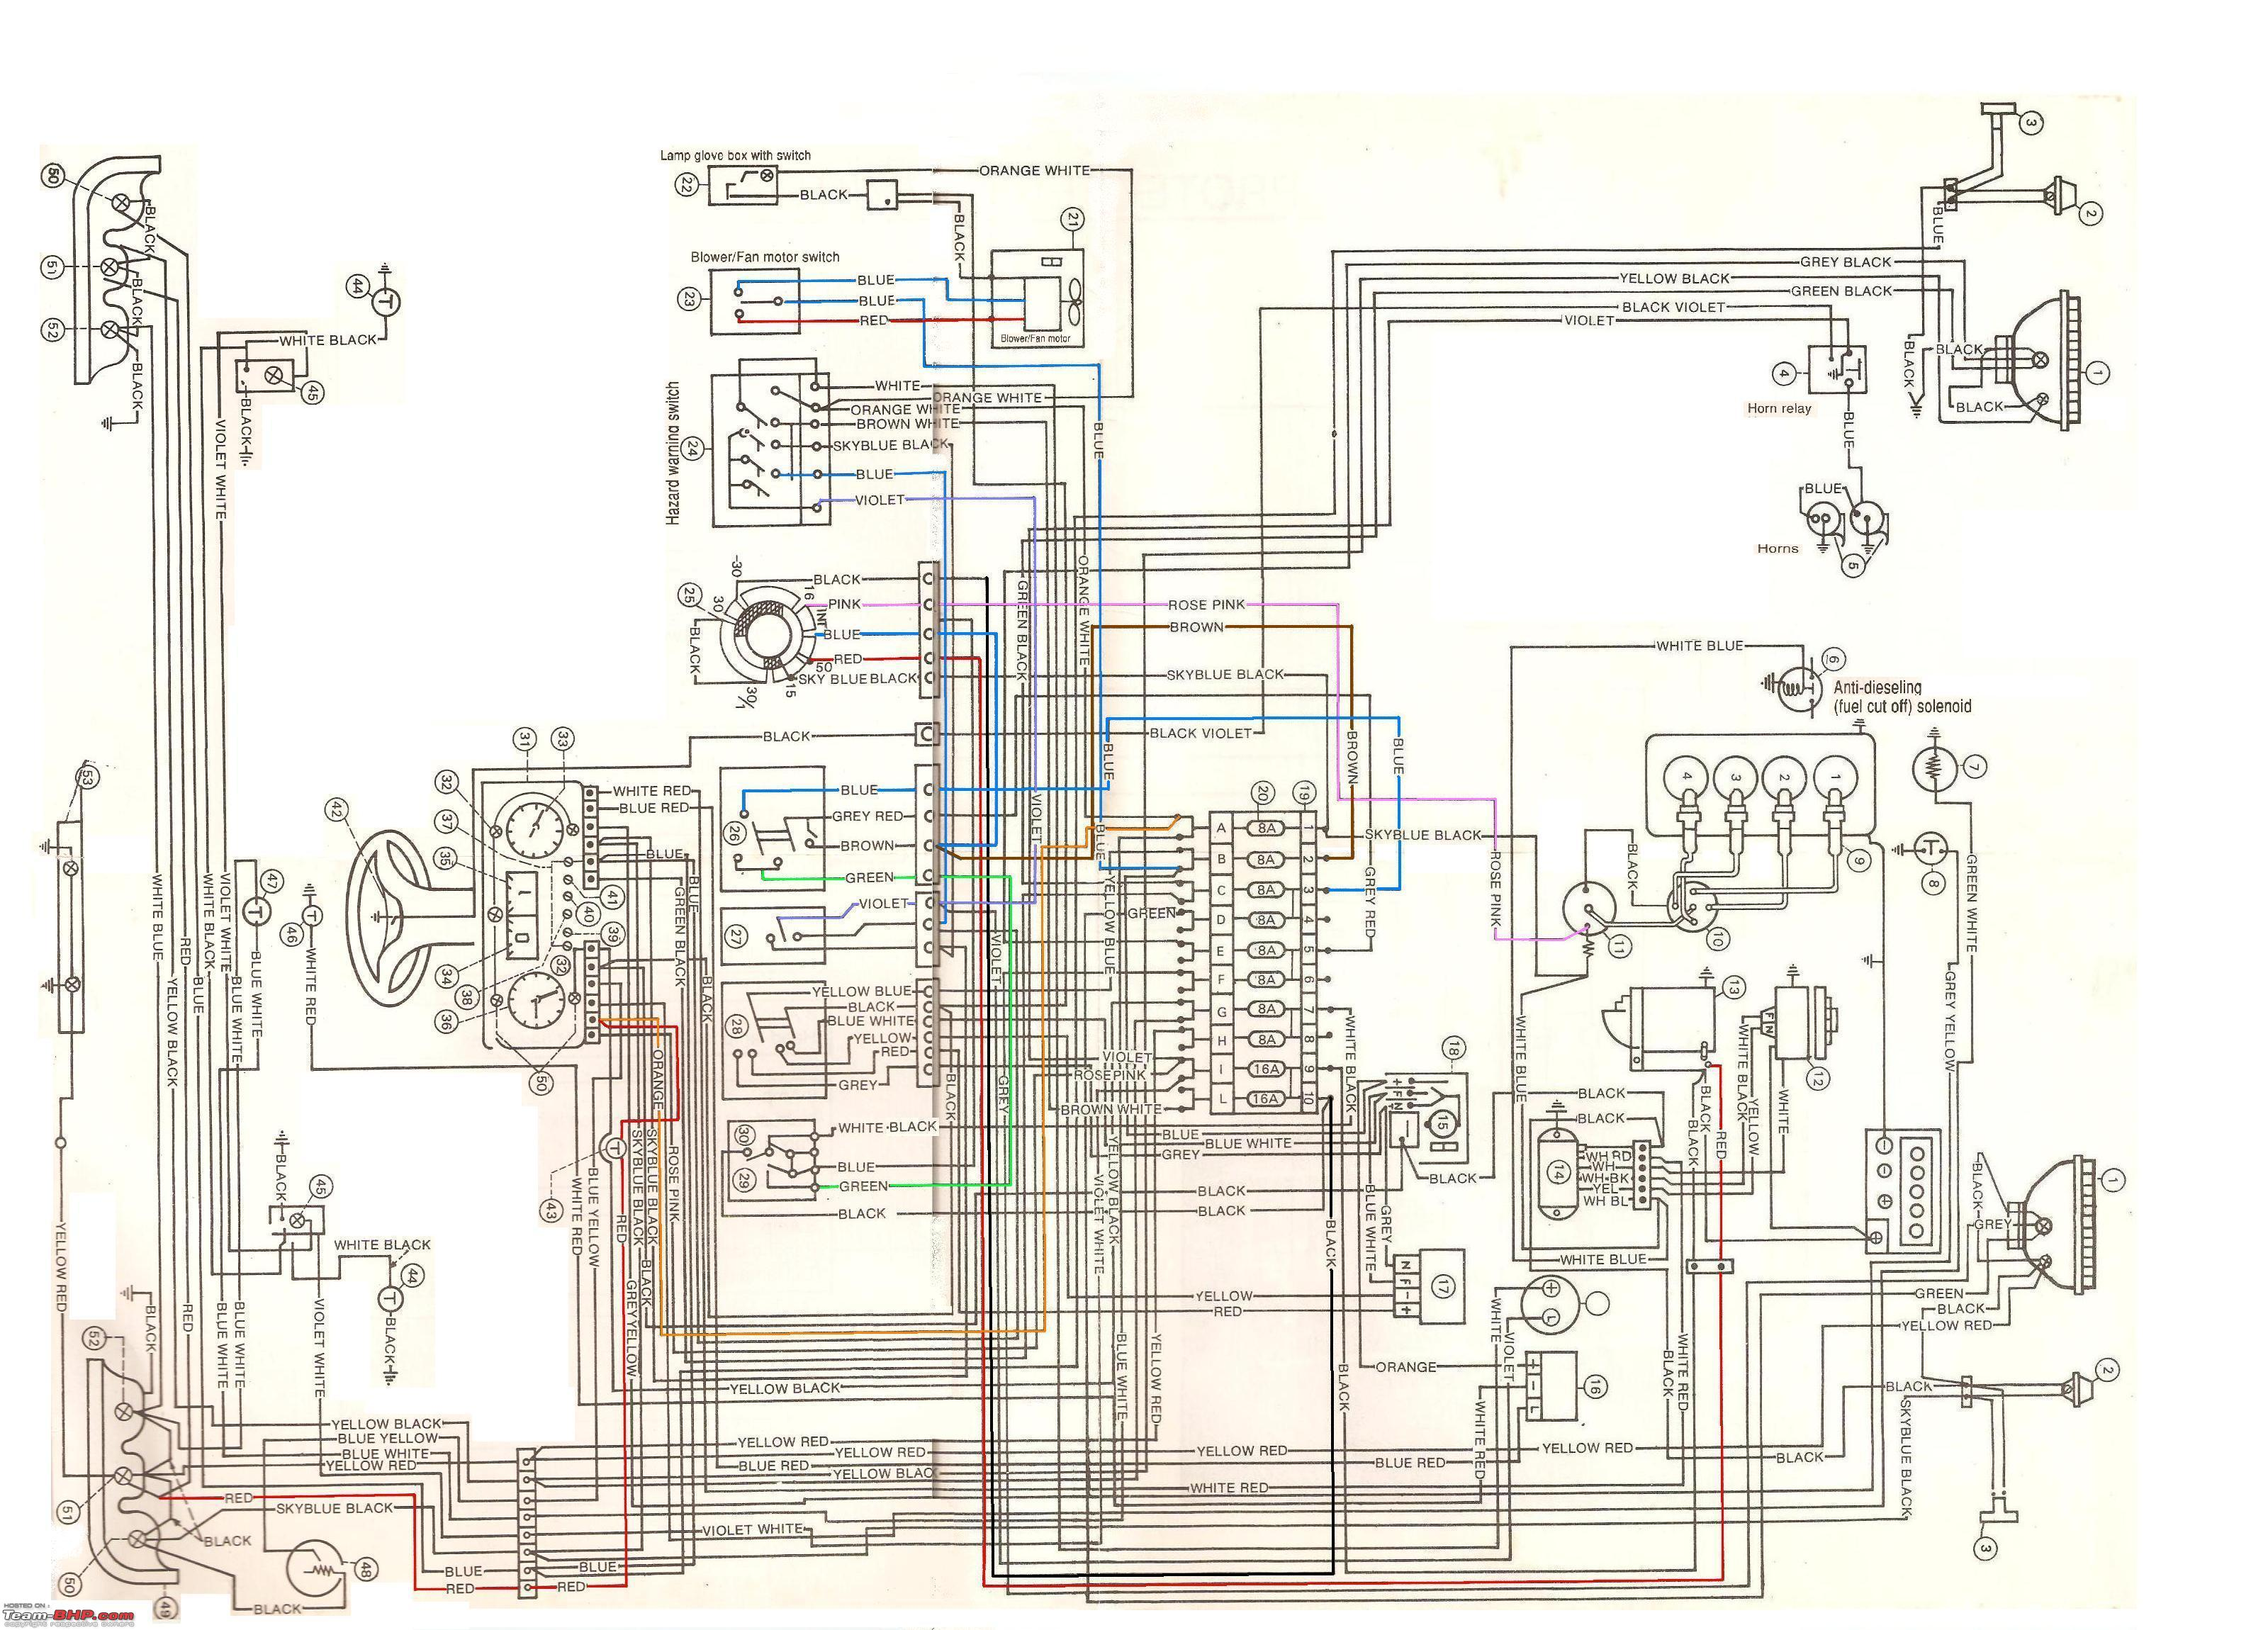 2009 Dodge Circuit Ev Front 1280x960 Wallpaper Motor Wiring Evo Pt Cruiser Engine Diagram Related Video Of 90 Diagrams 4 Fuse